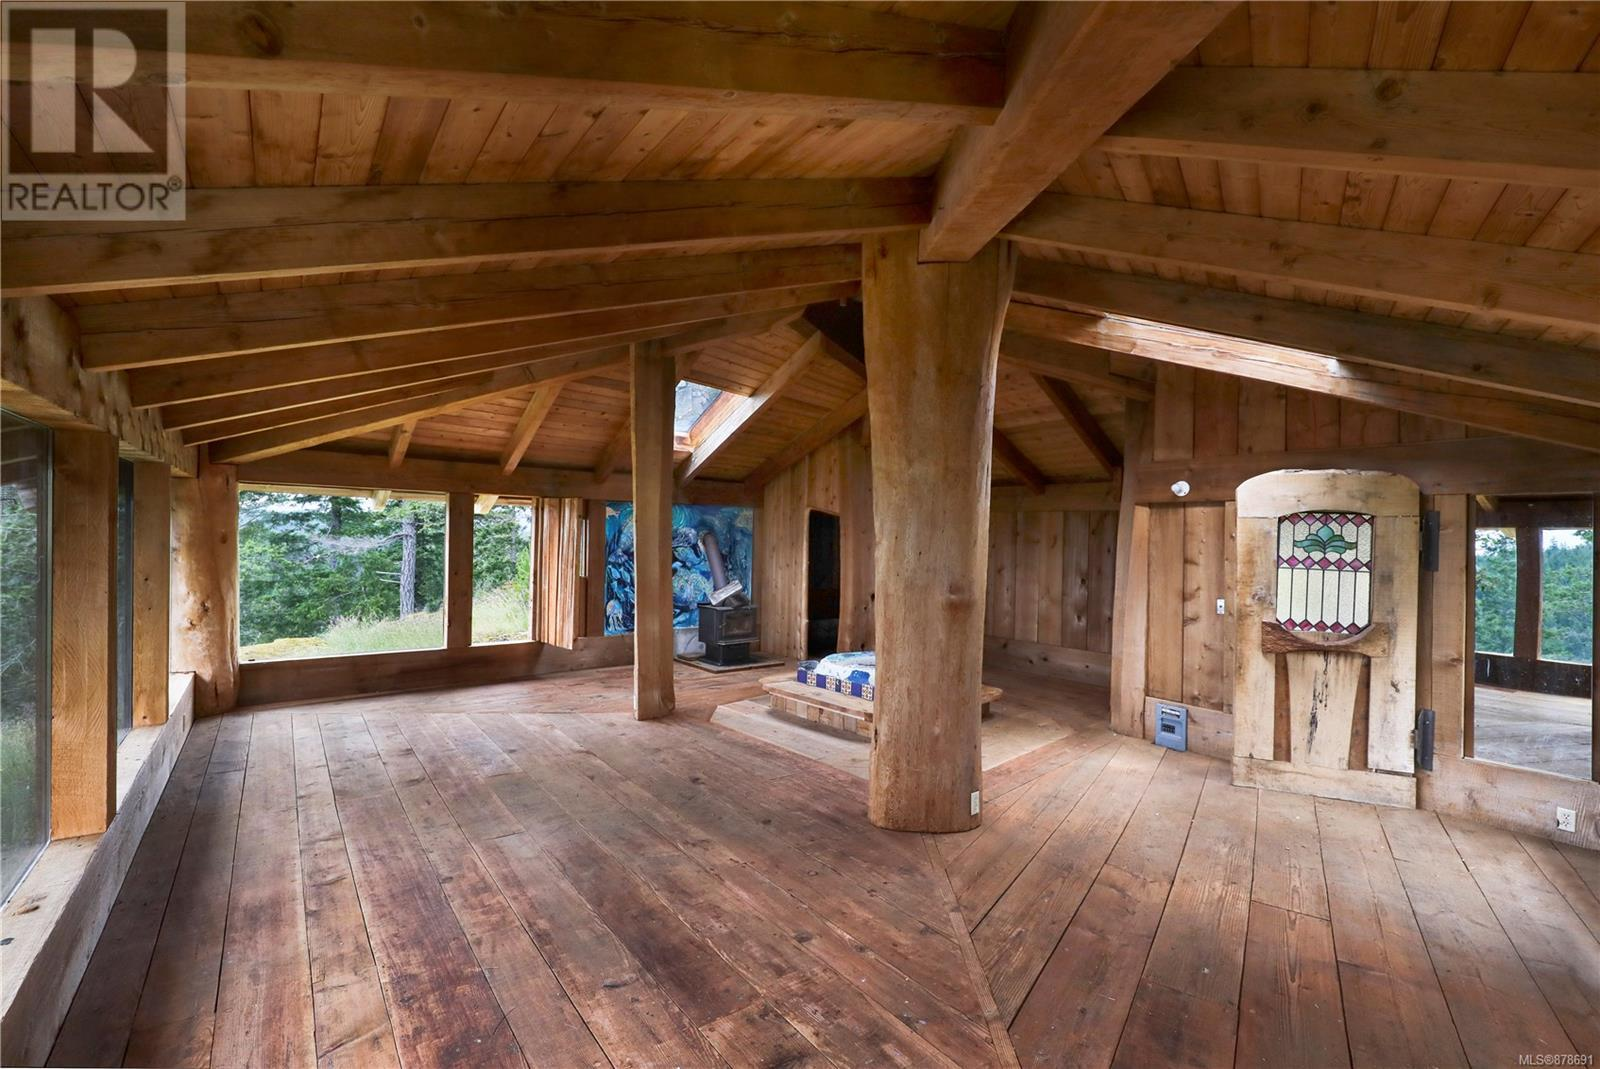 MLS® #878691 - Cortes Island House For sale Image #24